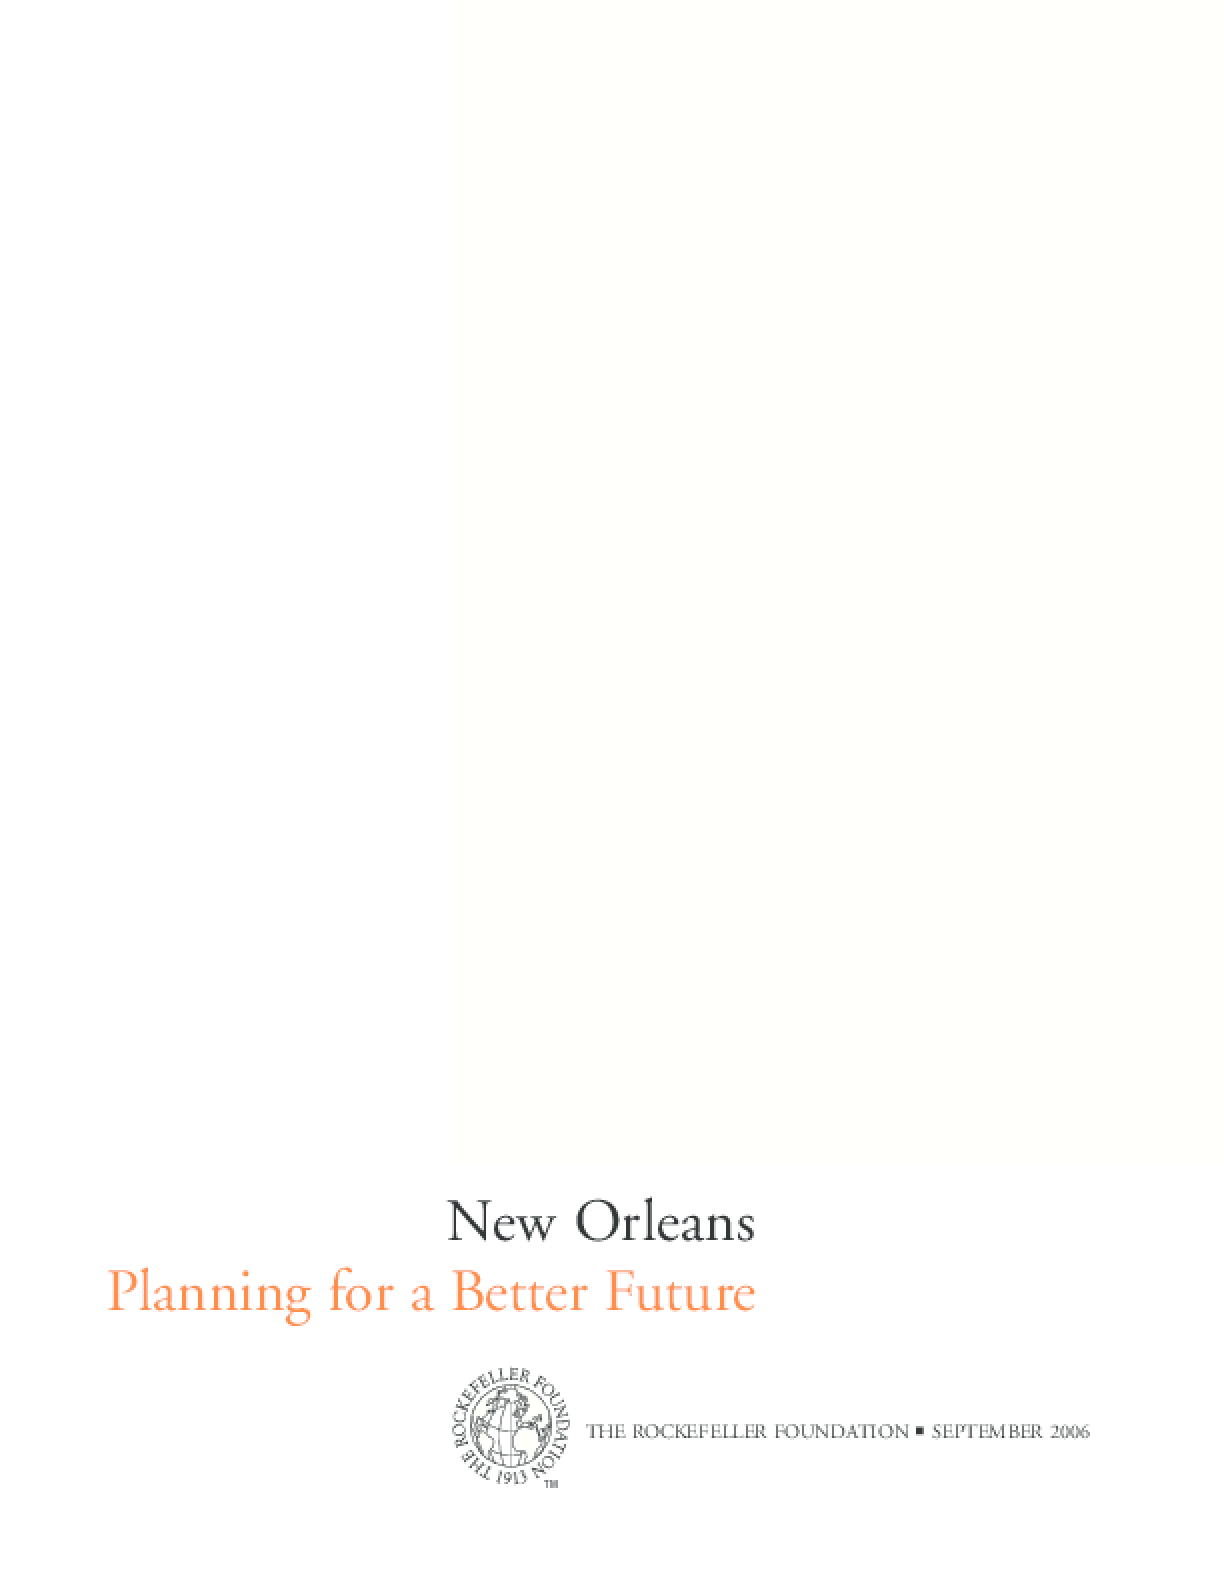 New Orleans: Planning for a Better Future